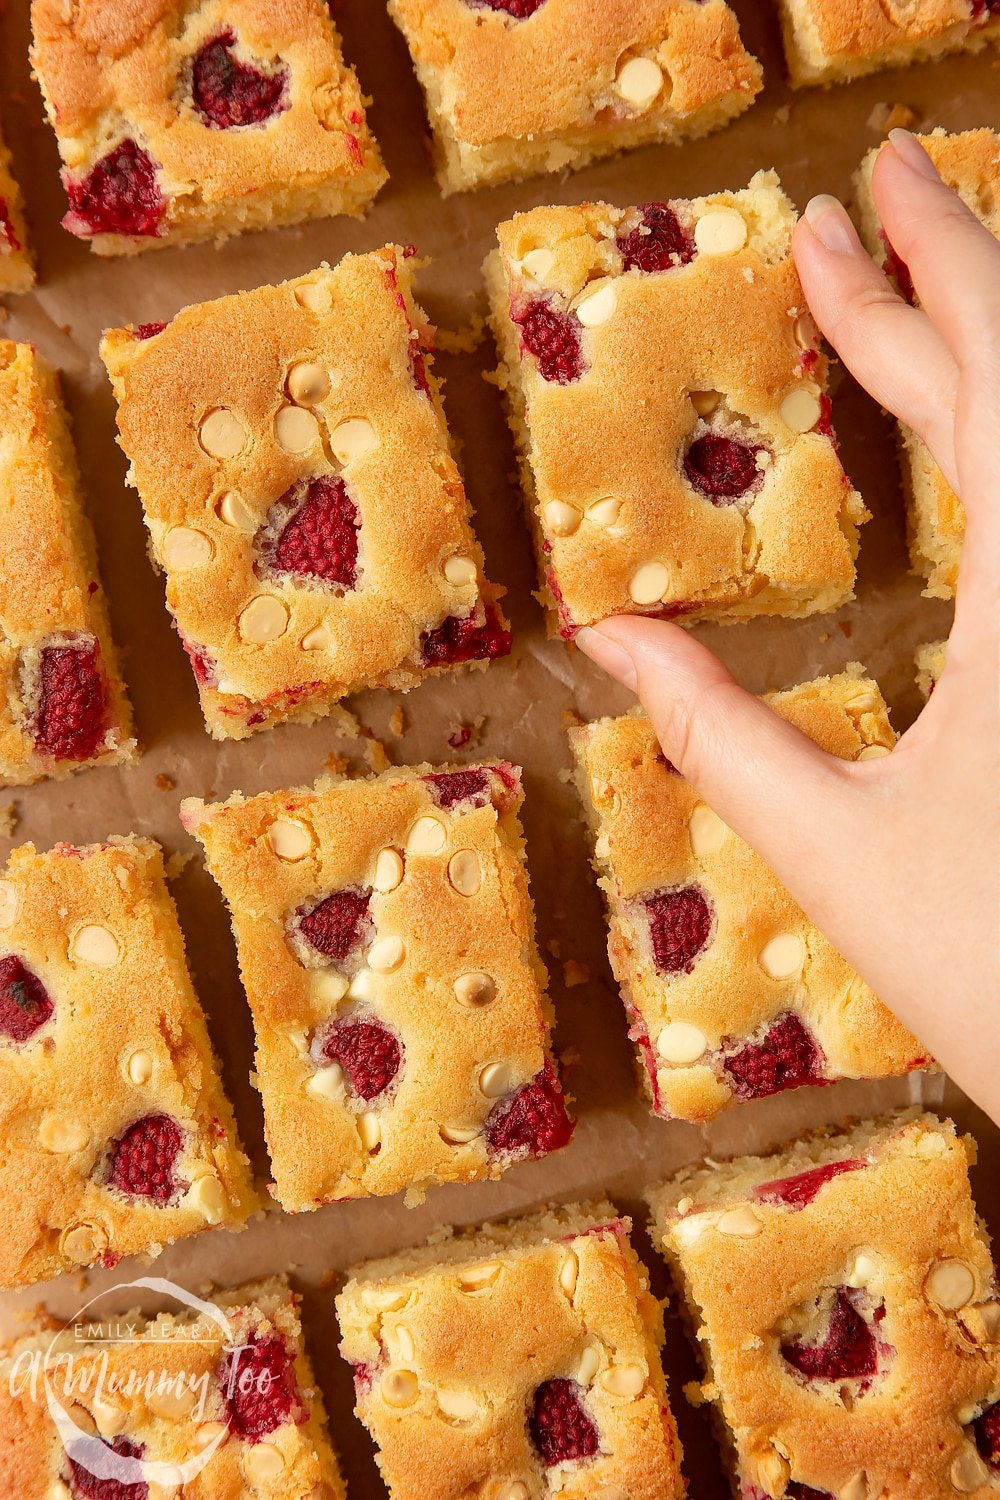 Picking up a serving of the incredible raspberry and white chocolate traybake